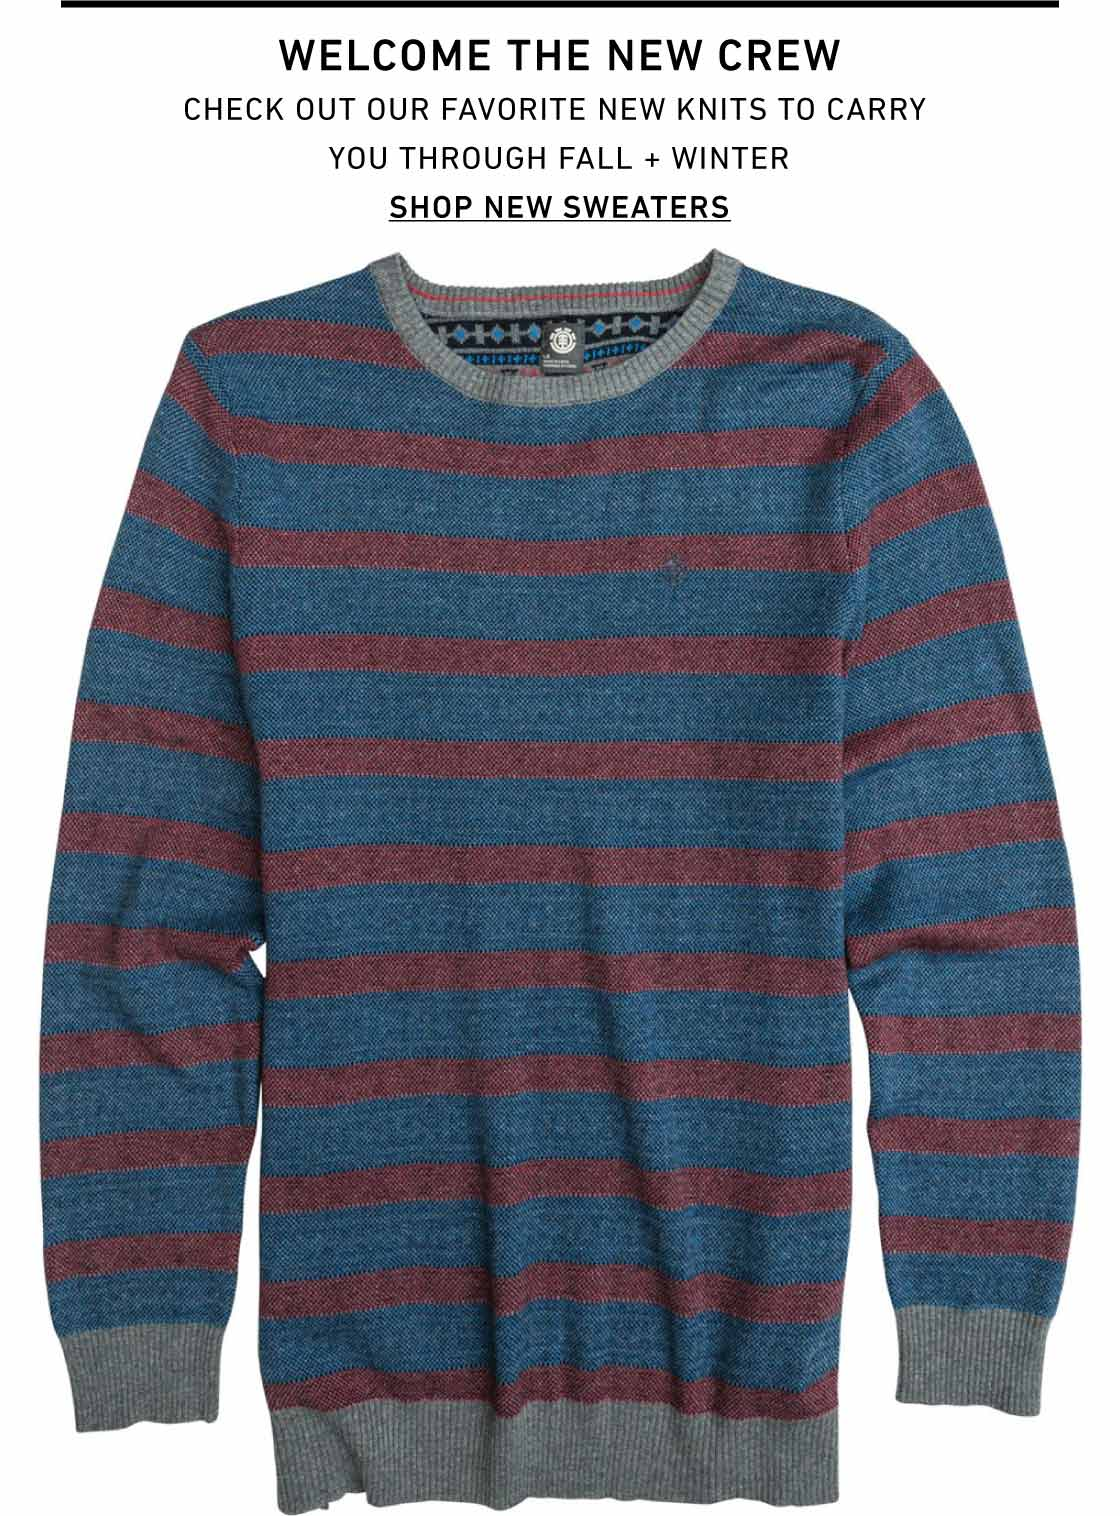 Shop New Sweaters